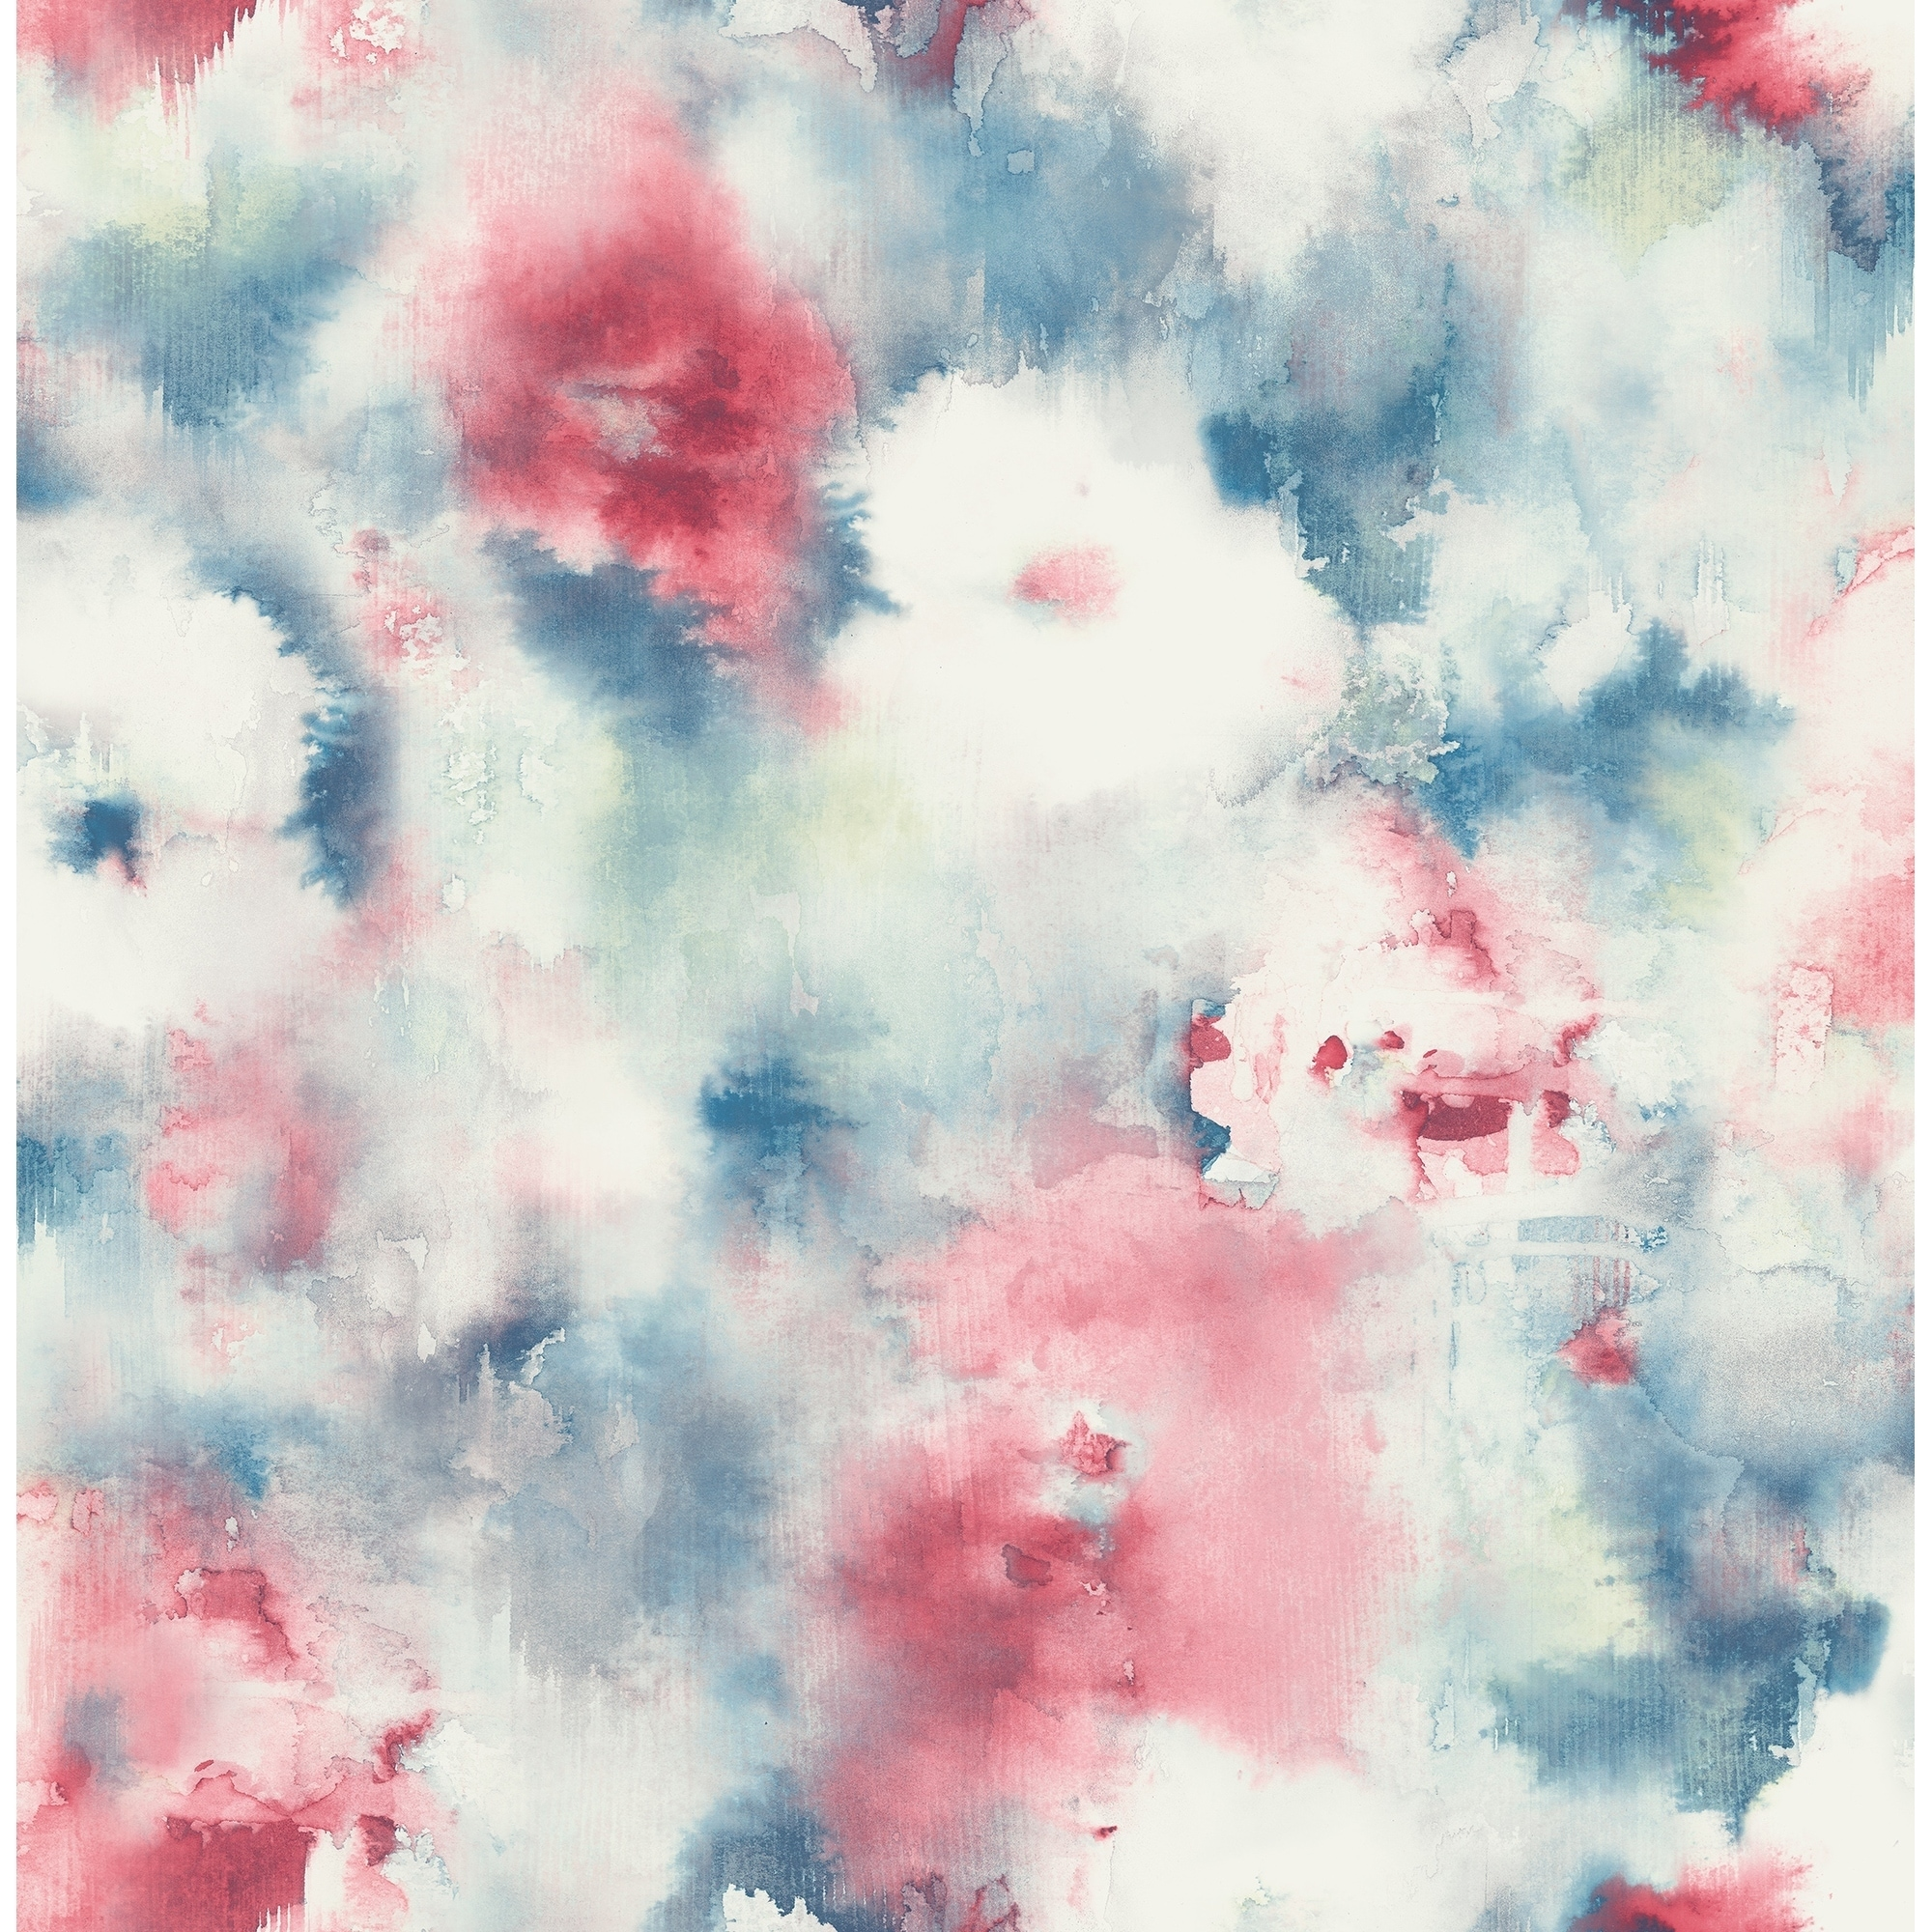 Shop Satin Abstract Floral Wallpaper 32 81 Feet Long X 20 5 Inchs Wide Hot Pink Lime Green Off White Overstock 30270626